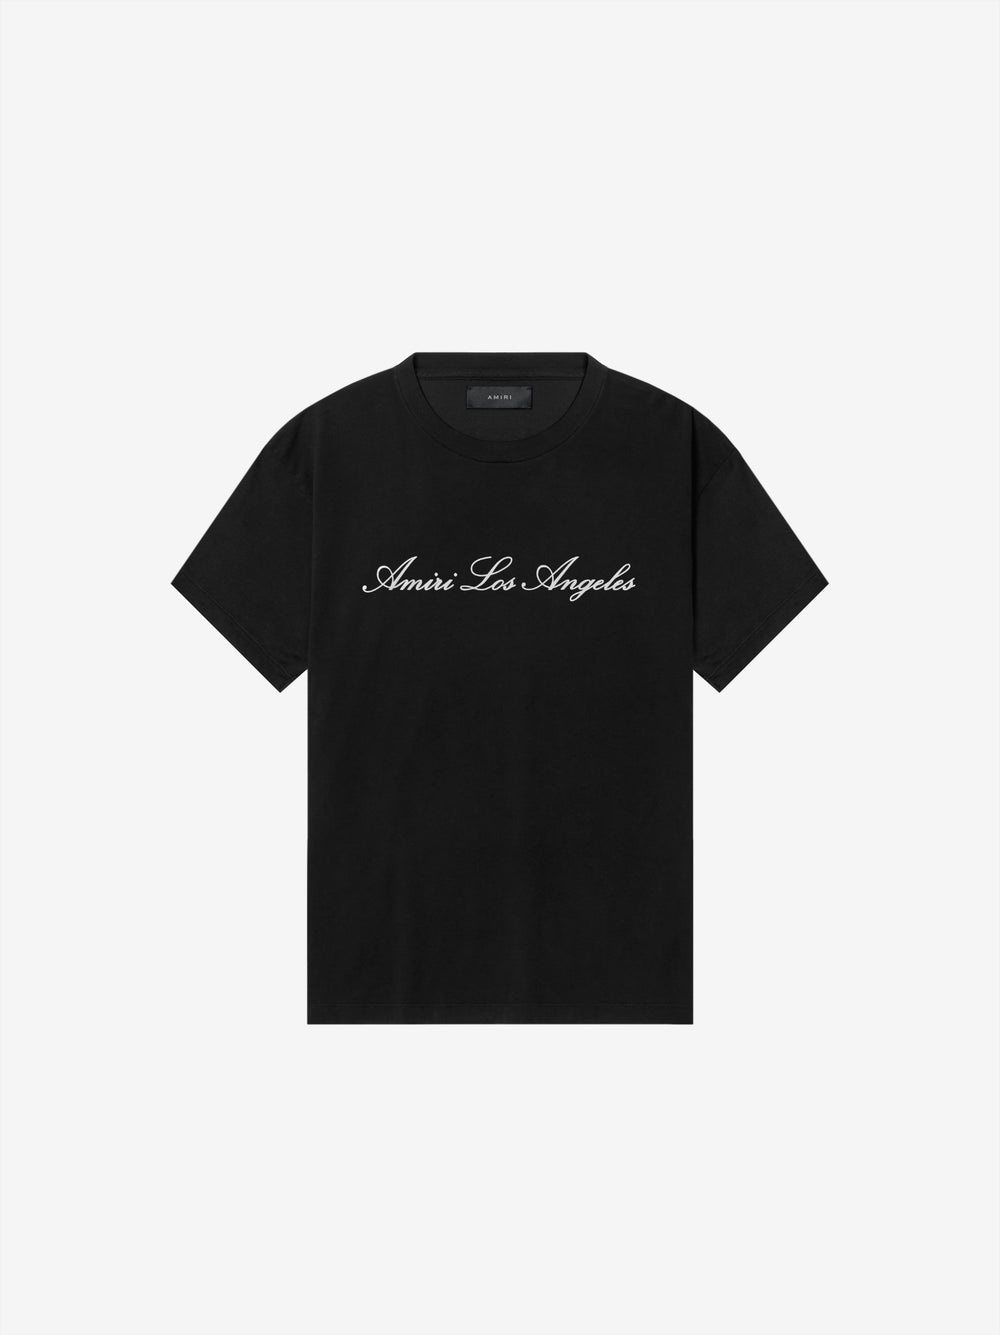 Amiri Los Angeles Tee - Black